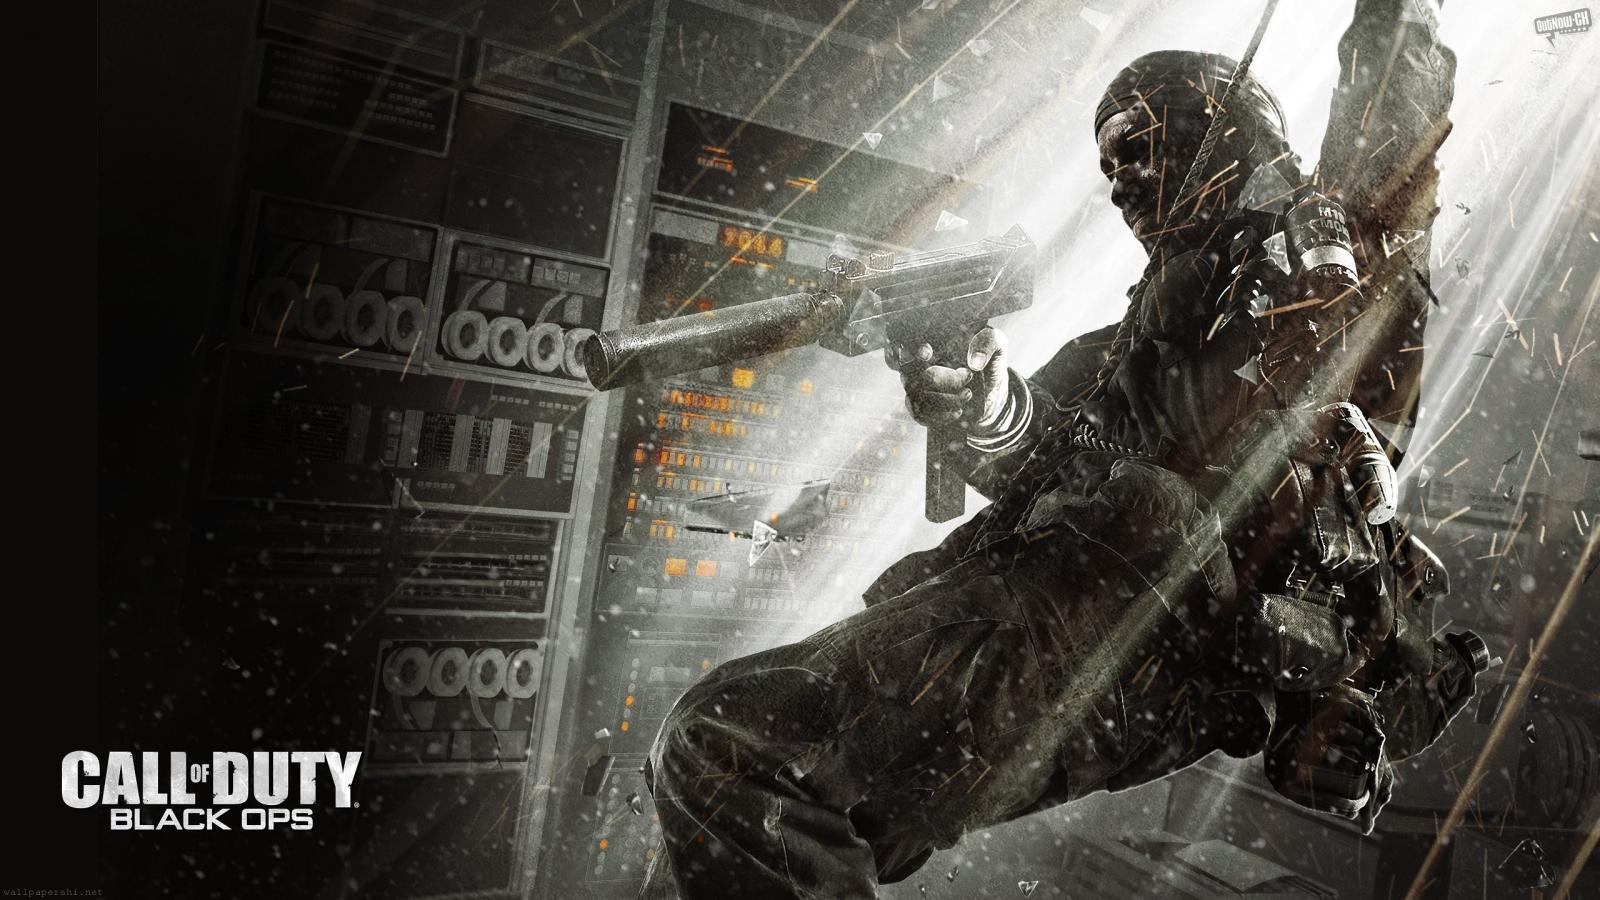 Tags black ops 2 1080p wallpaperblack ops 2 hd imagescod black ops 1600x900